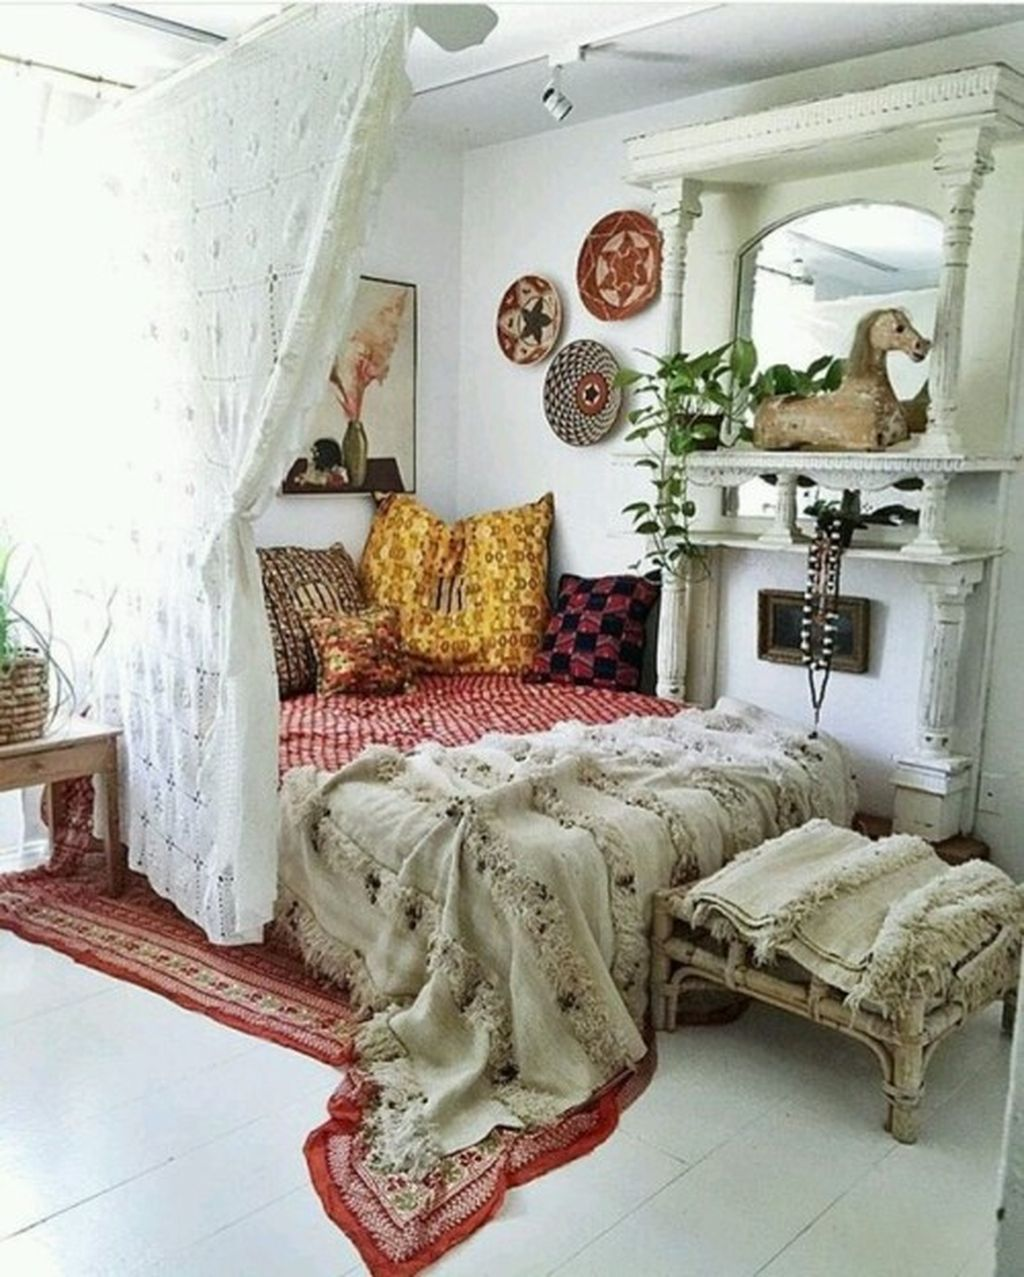 Bedroom Design Ideas Cheap 55 Greatest Bedroom Decor Ideas On A Budget  Budgeting Bedrooms